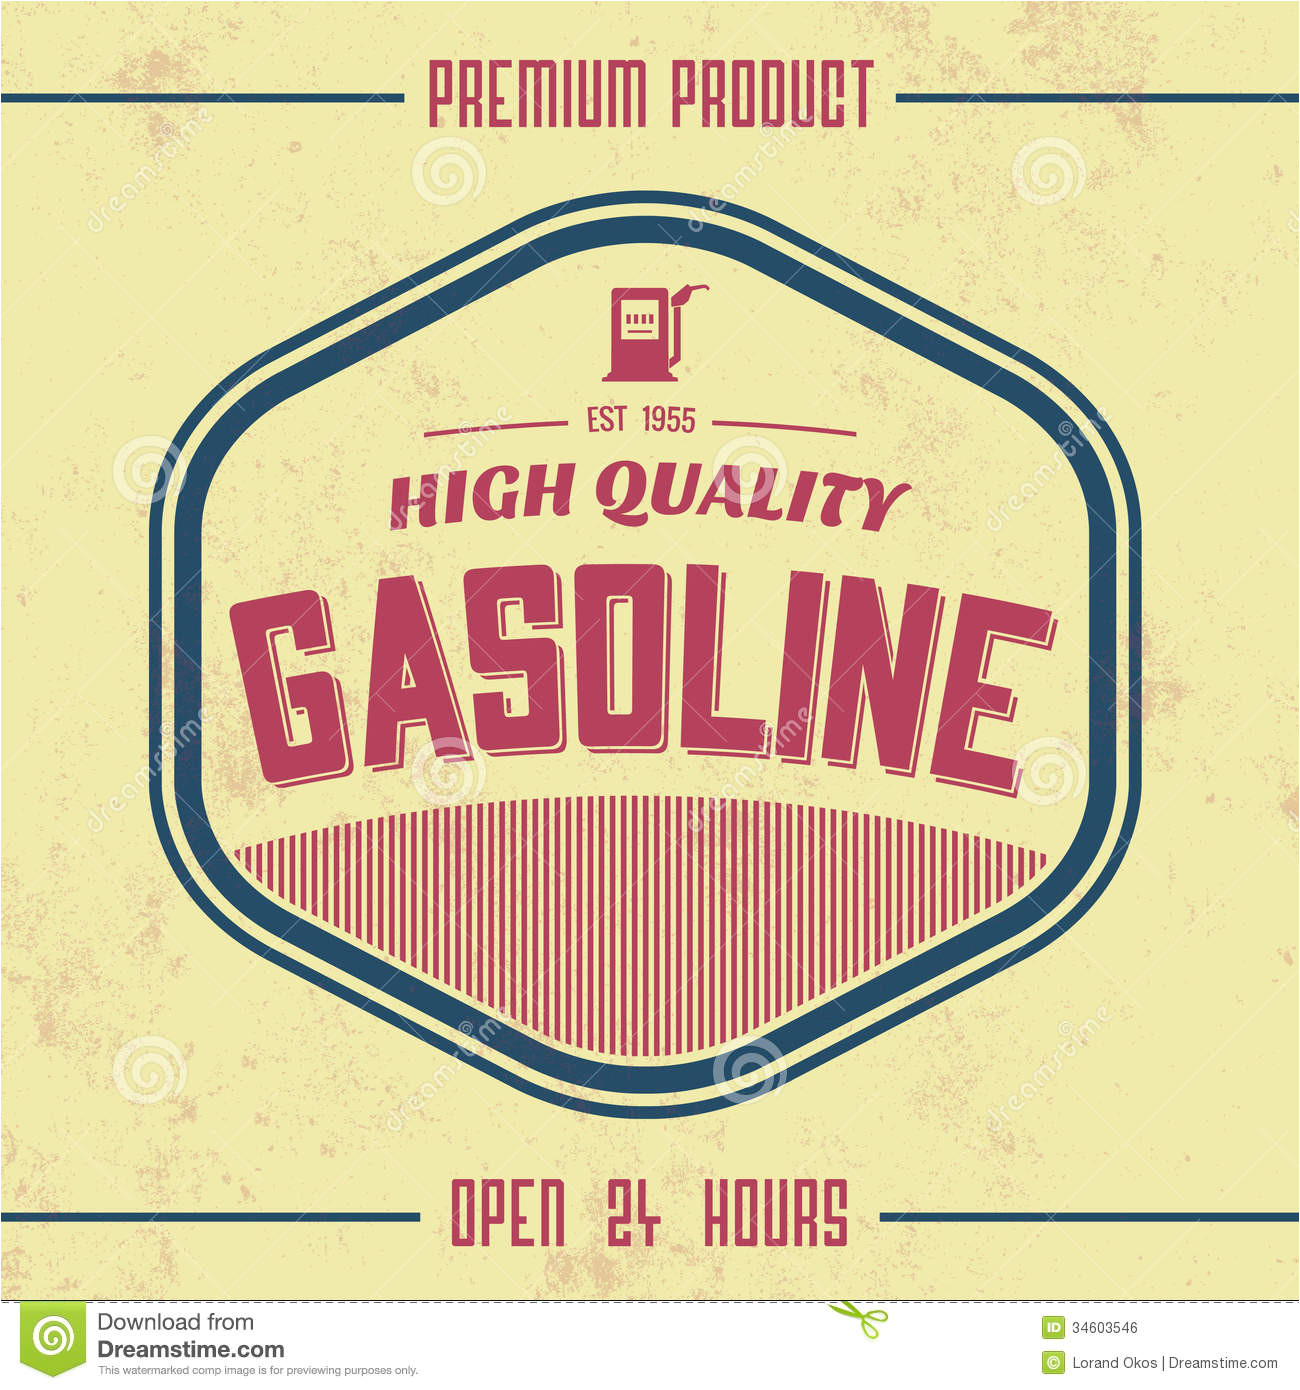 royalty free stock image vintage gasoline sign retro template grunge texture image34603546